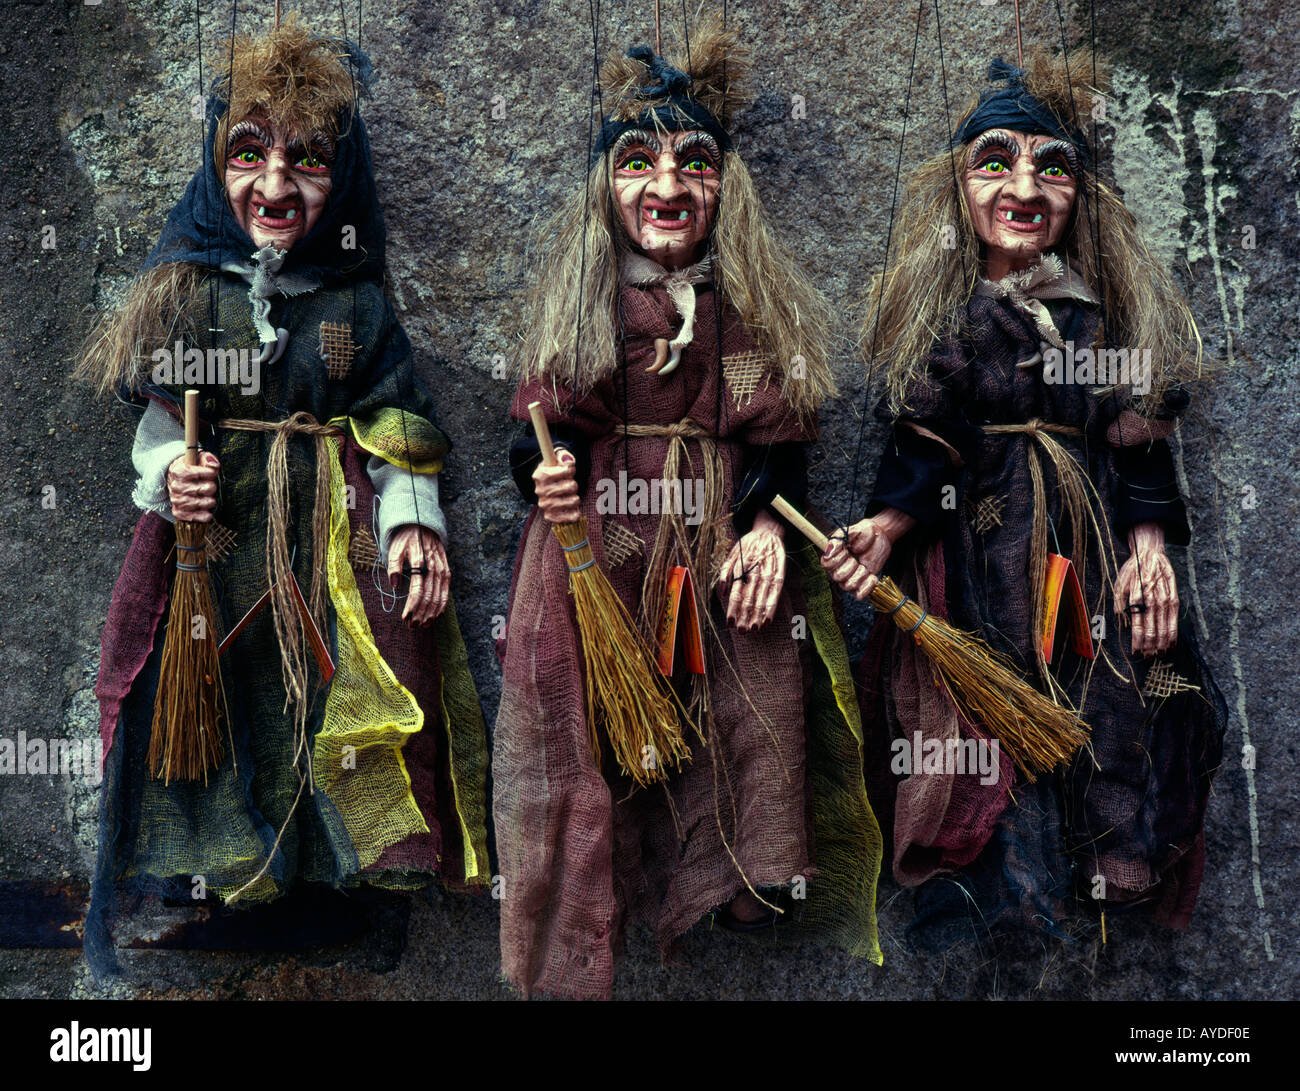 Central Europe Czech Republic South Bohemia Cesky Krumlov Arts Crafts 3 puppets of witches - Stock Image